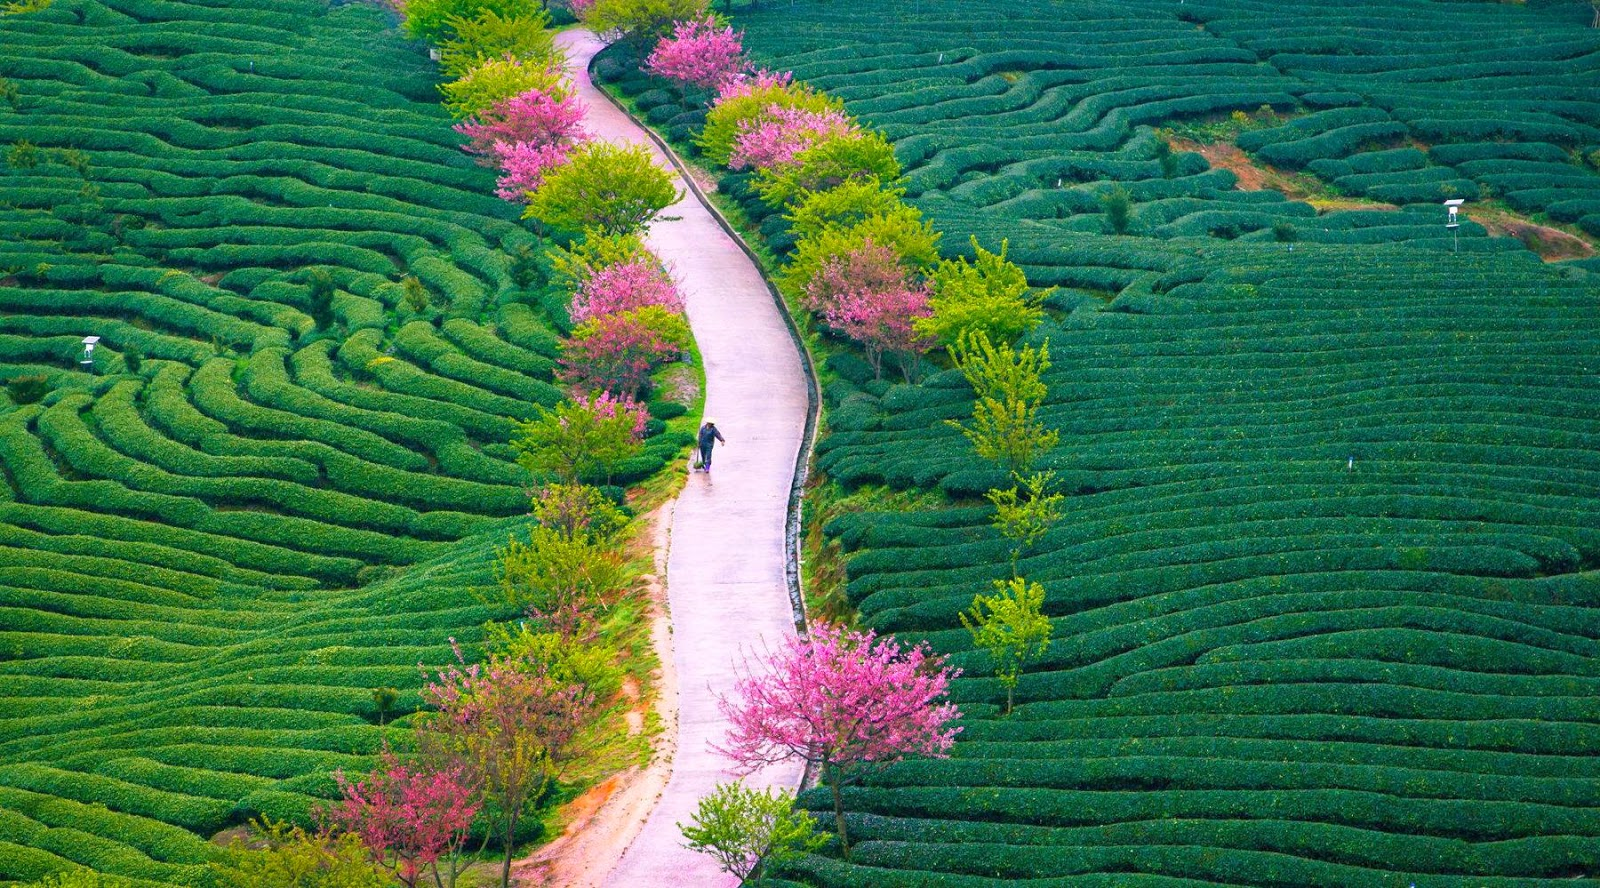 Tea Farm Spring by Zhangning